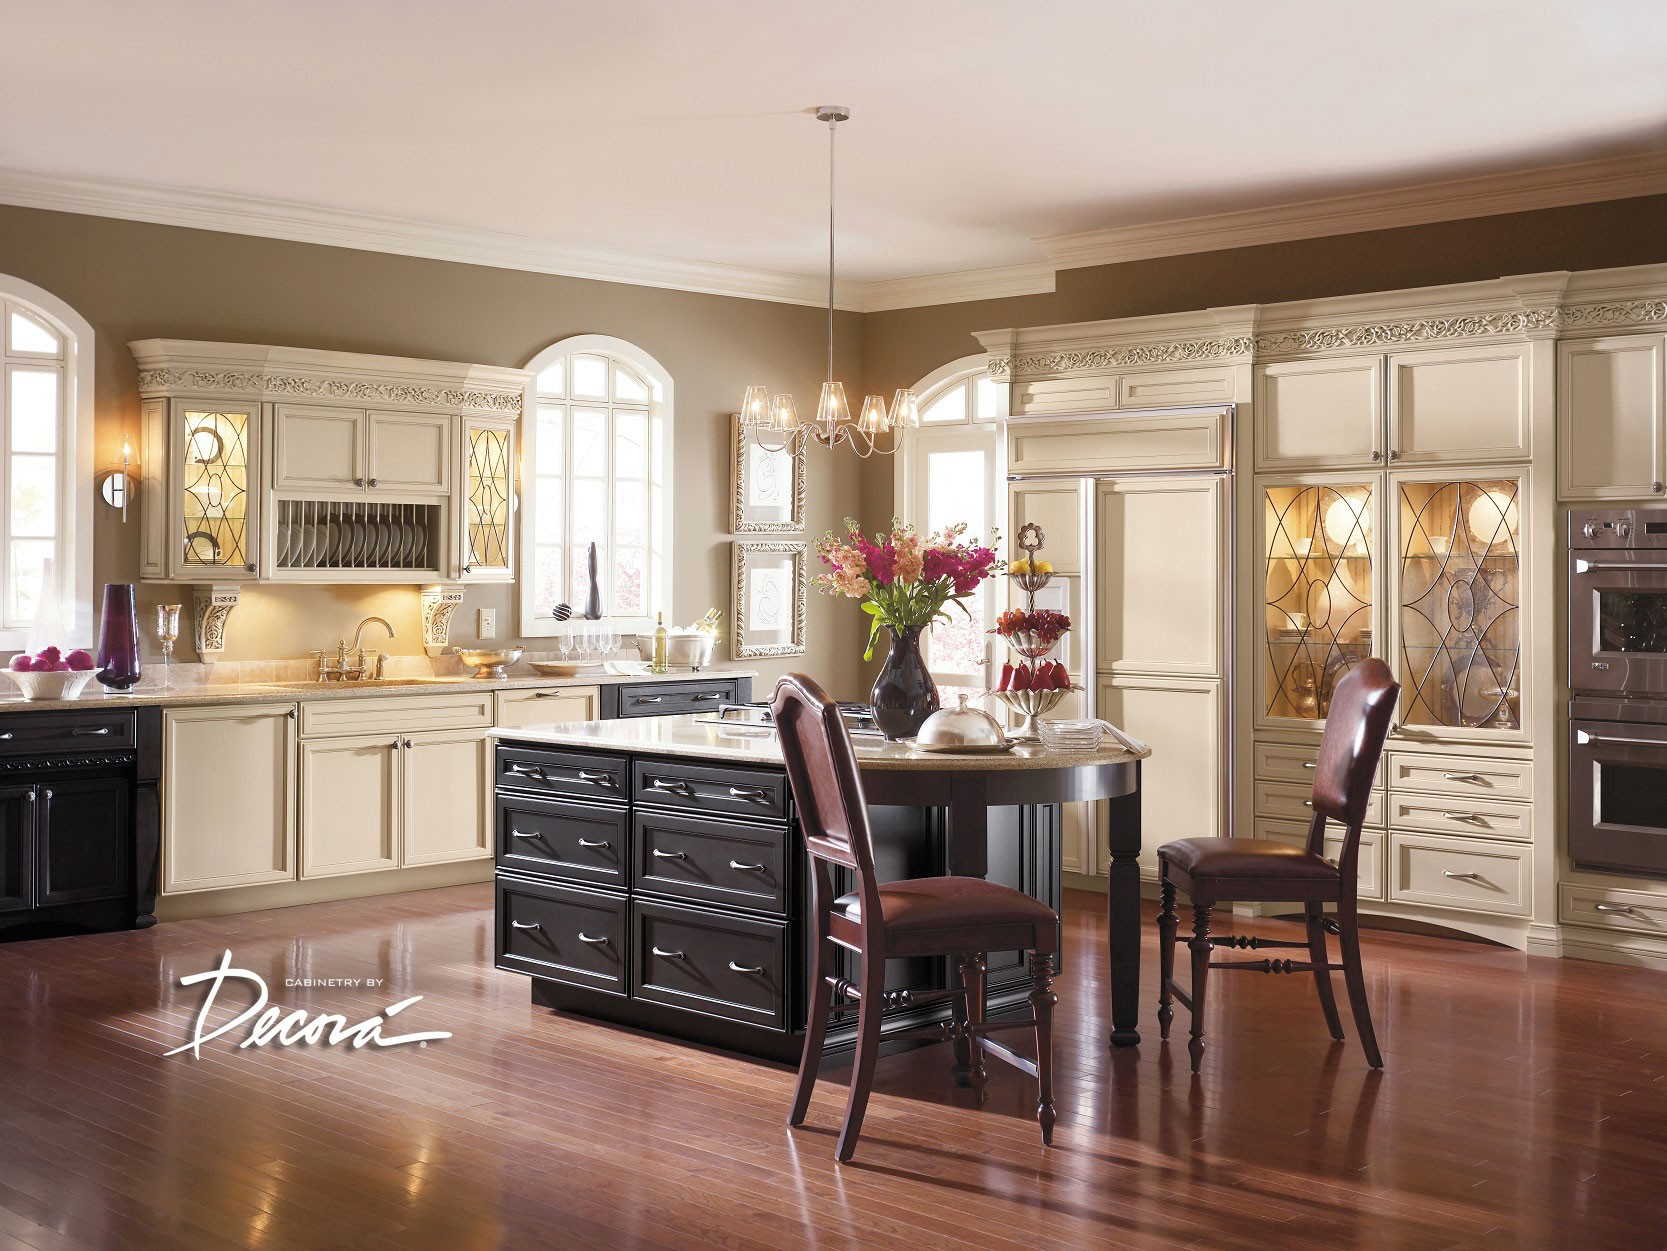 Grand Cabinets Features Quality Design With Premium Selection Of